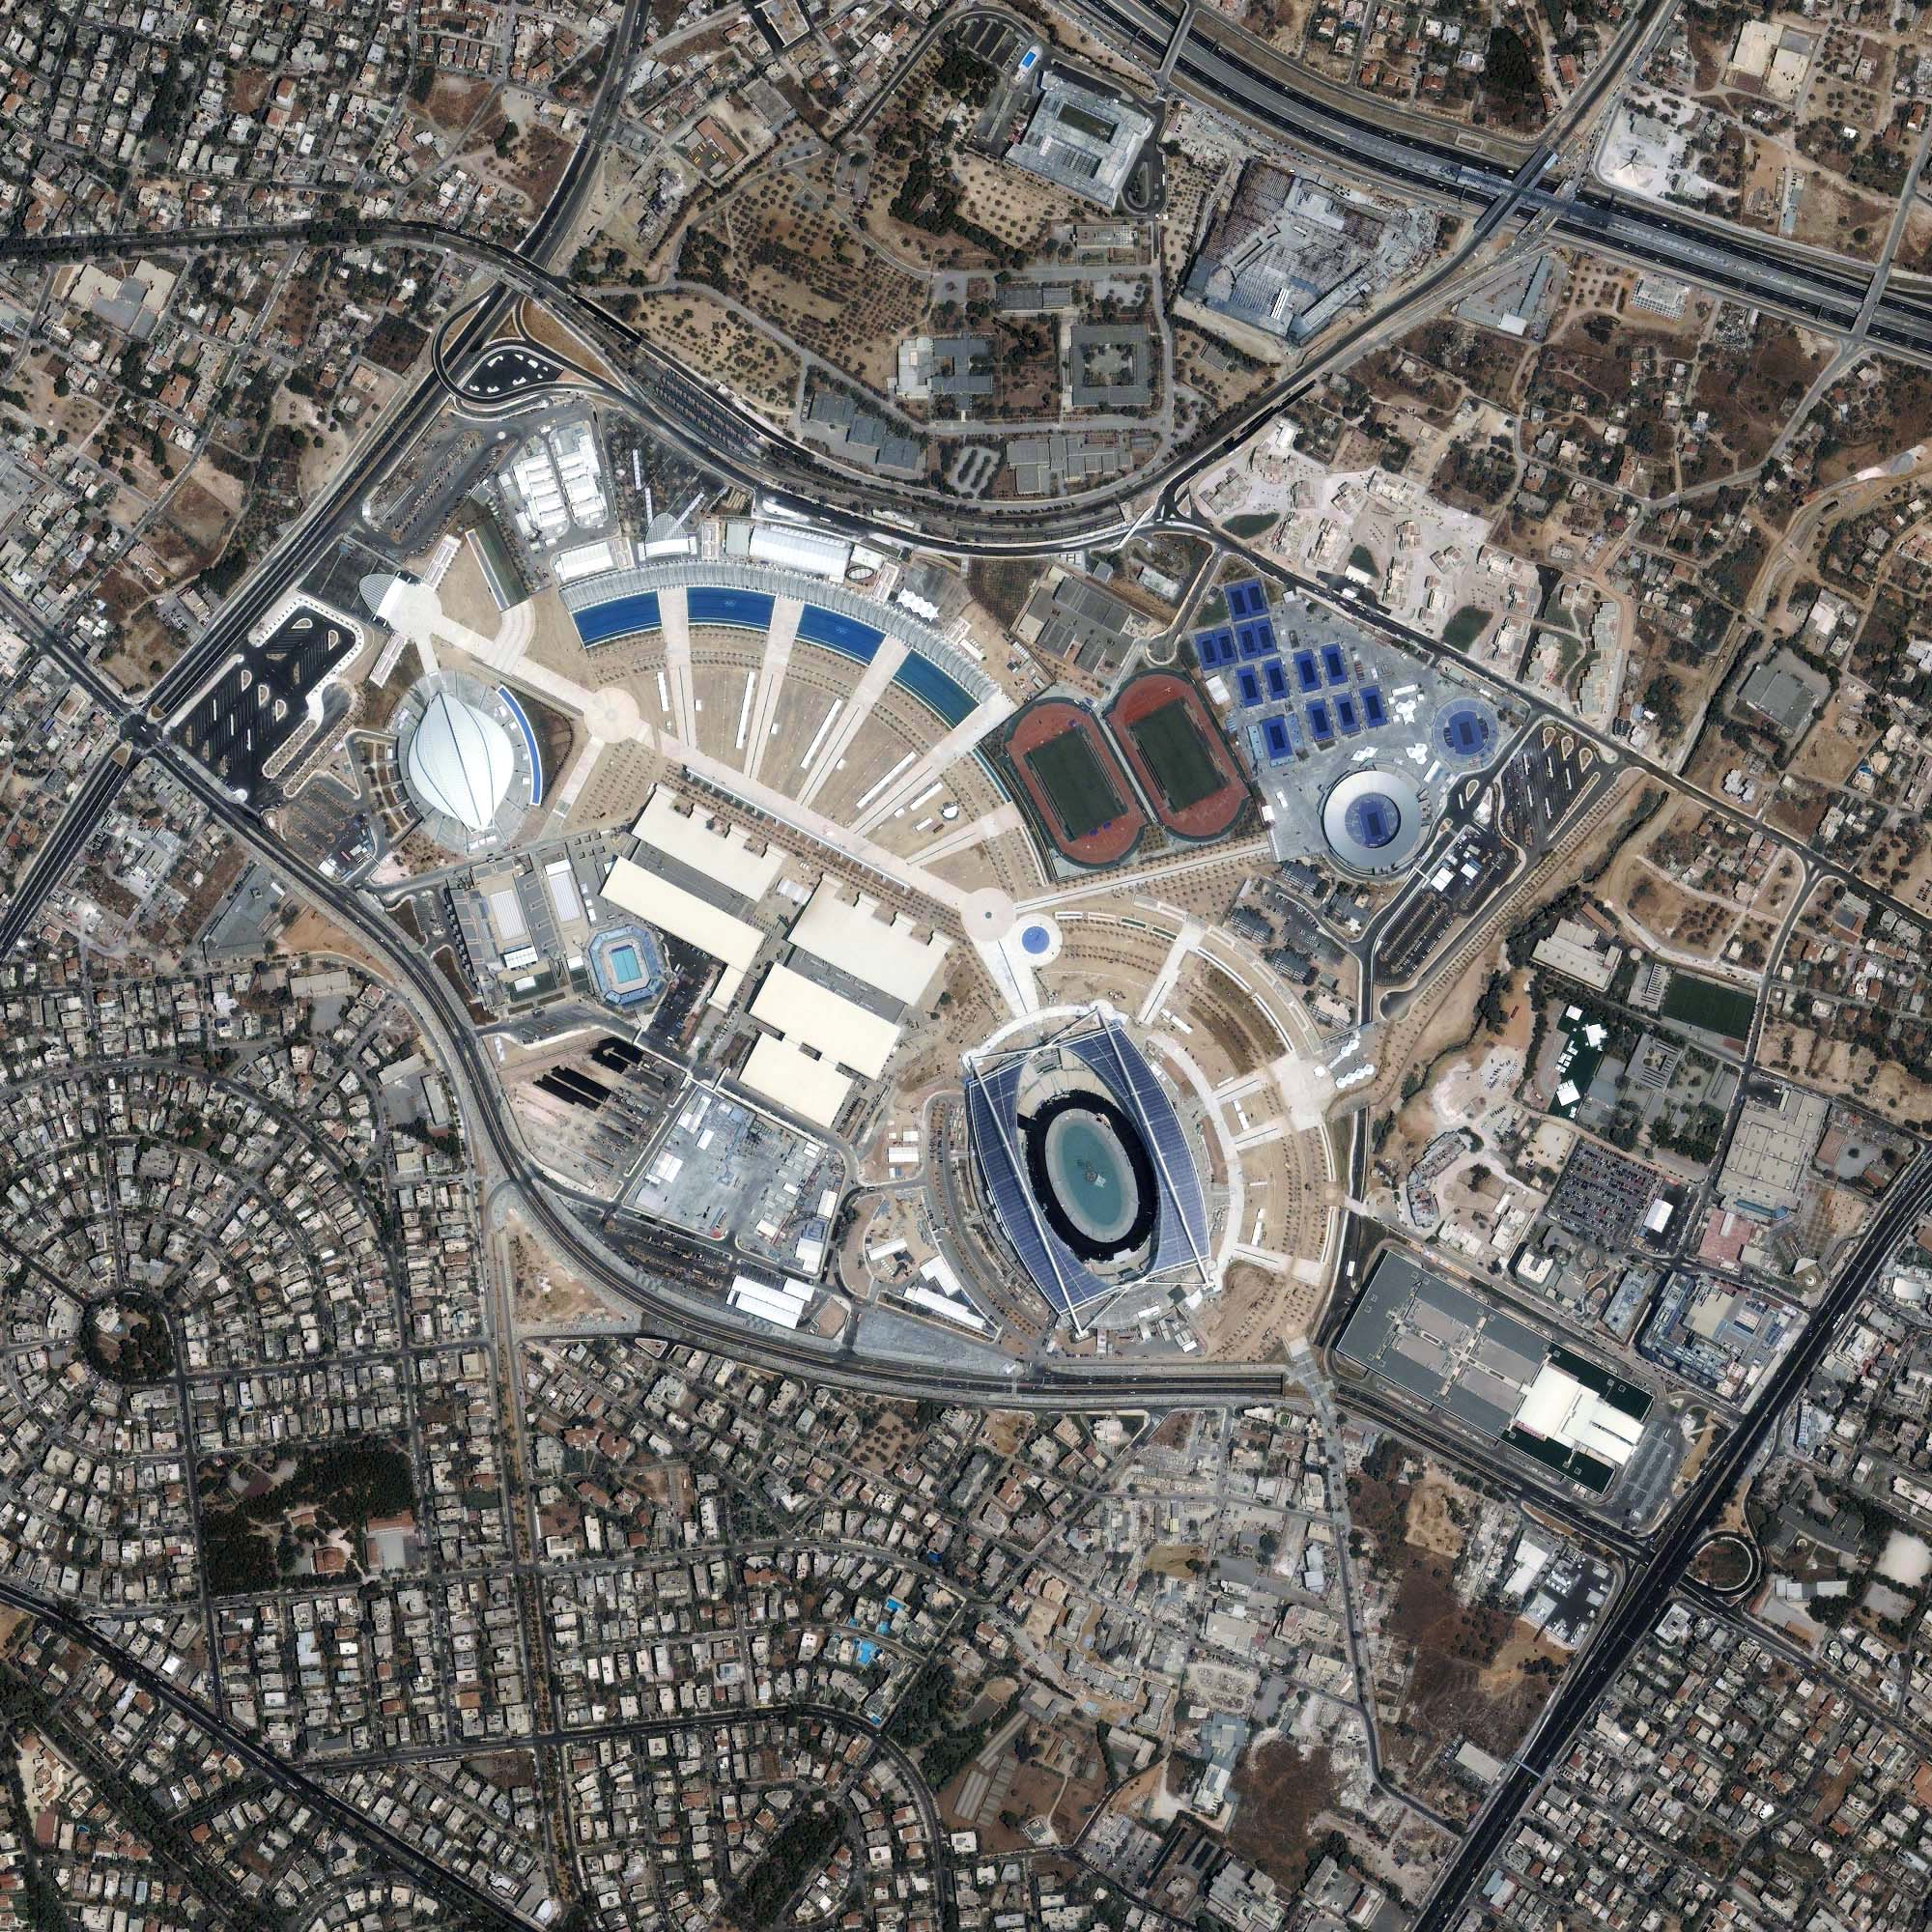 Athens Olympics Sports Complex Image Of The Day